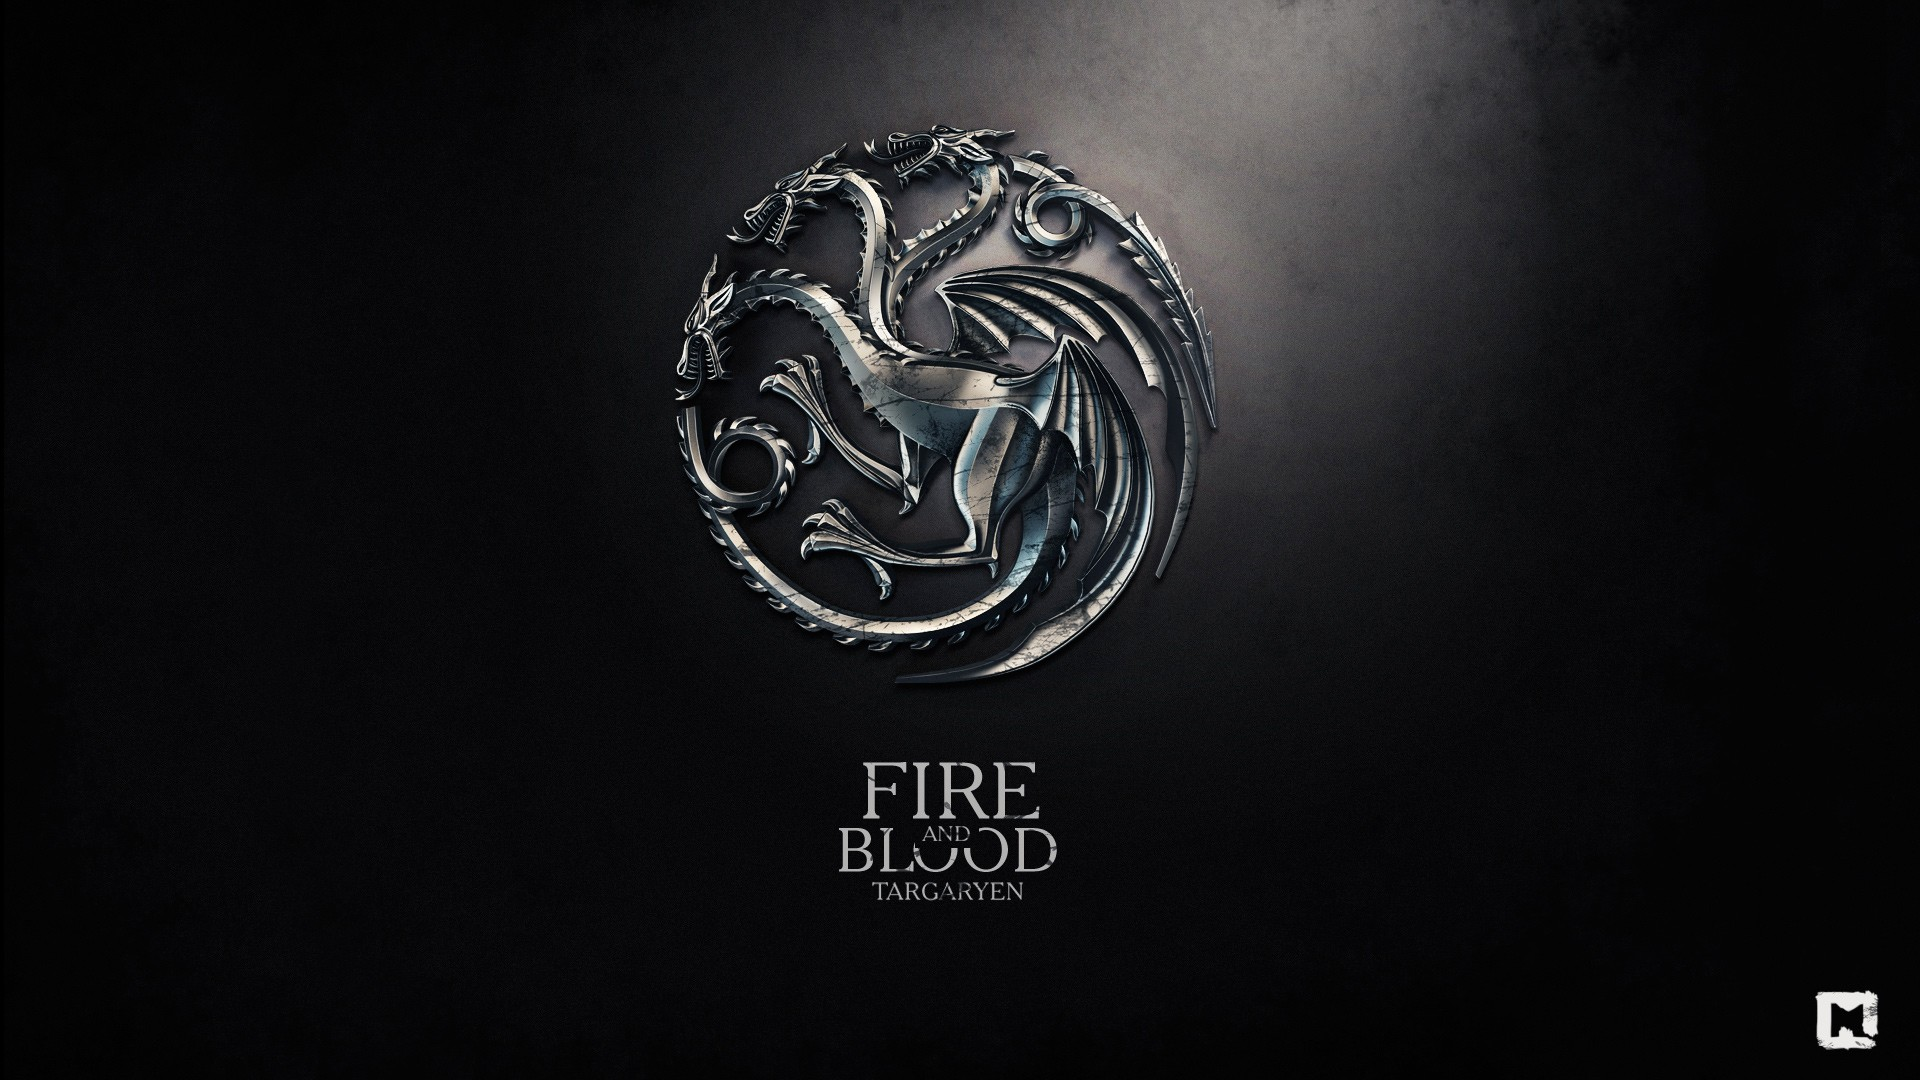 Game of Thrones wallpaper A song of Ice and Fire Targaryen Dragon symbol logo (wallpapers